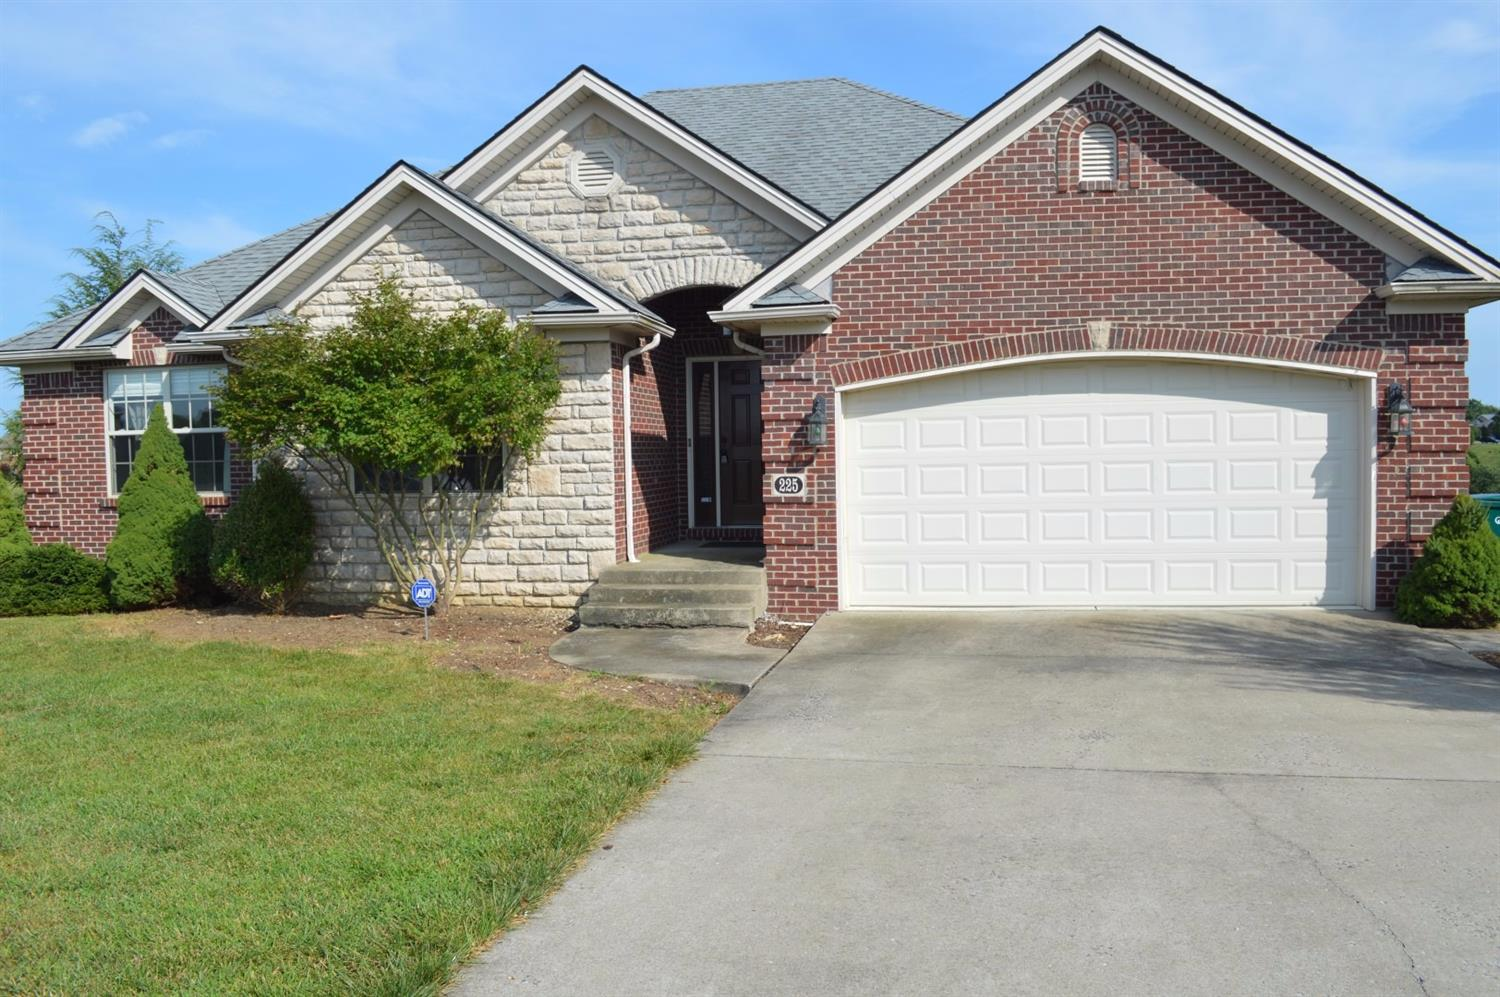 A%20great%20stone%20and%20brick%20ranch%20home%20with%20finished%20basement%20in%20North%20Madison%20County!%20This%20house%20features%20hardwood%20formal%20entry,%20formal%20dining%20room%20with%20double%20tray%20ceilings%20and%20crown%20molding%20and%20huge%20open%20kitchen%20with%20island,%20new%20range%20&%20%20open%20to%20living%20room,%20which%20has%20hardwood%20floors,%20vaulted%20ceilings%20and%20gas%20log%20fireplace%20framed%20by%20a%20wall%20of%20stone.%20Master%20bedroom%20is%20large%20with%20separate%20shower%20and%20jetted%20tub,%20dual%20vanities%20and%20walk%20in%20closet.%20Fully%20finished%20basement%20has%20a%20full%20bathroom,%20a%20large%20bedroom%20and%20another%20room%20with%20window%20and%20closet%20which%20can%20be%20used%20as%20a%205th%20bedroom.%20Family%20room%20in%20basement%20has%20another%20gas%20fireplace%20and%20mantle.%20Utility%20garage%20with%20double%20doors%20offers%20extra%20storage%20for%20your%20lawn%20equipment.%20Less%20than%201%20mile%20from%20Madison%20county's%20most%20North%20exit%20off%20I-75.%20%20Just%2010-15%20minutes%20to%20Hamburg.%20Owners%20will%20provide%20a%201%20year%20home%20warranty%20to%20buyer%20at%20closing.%20Owners%20will%20give%20buyers%20a%20$3000%20carpet%20allowance%20at%20closing.